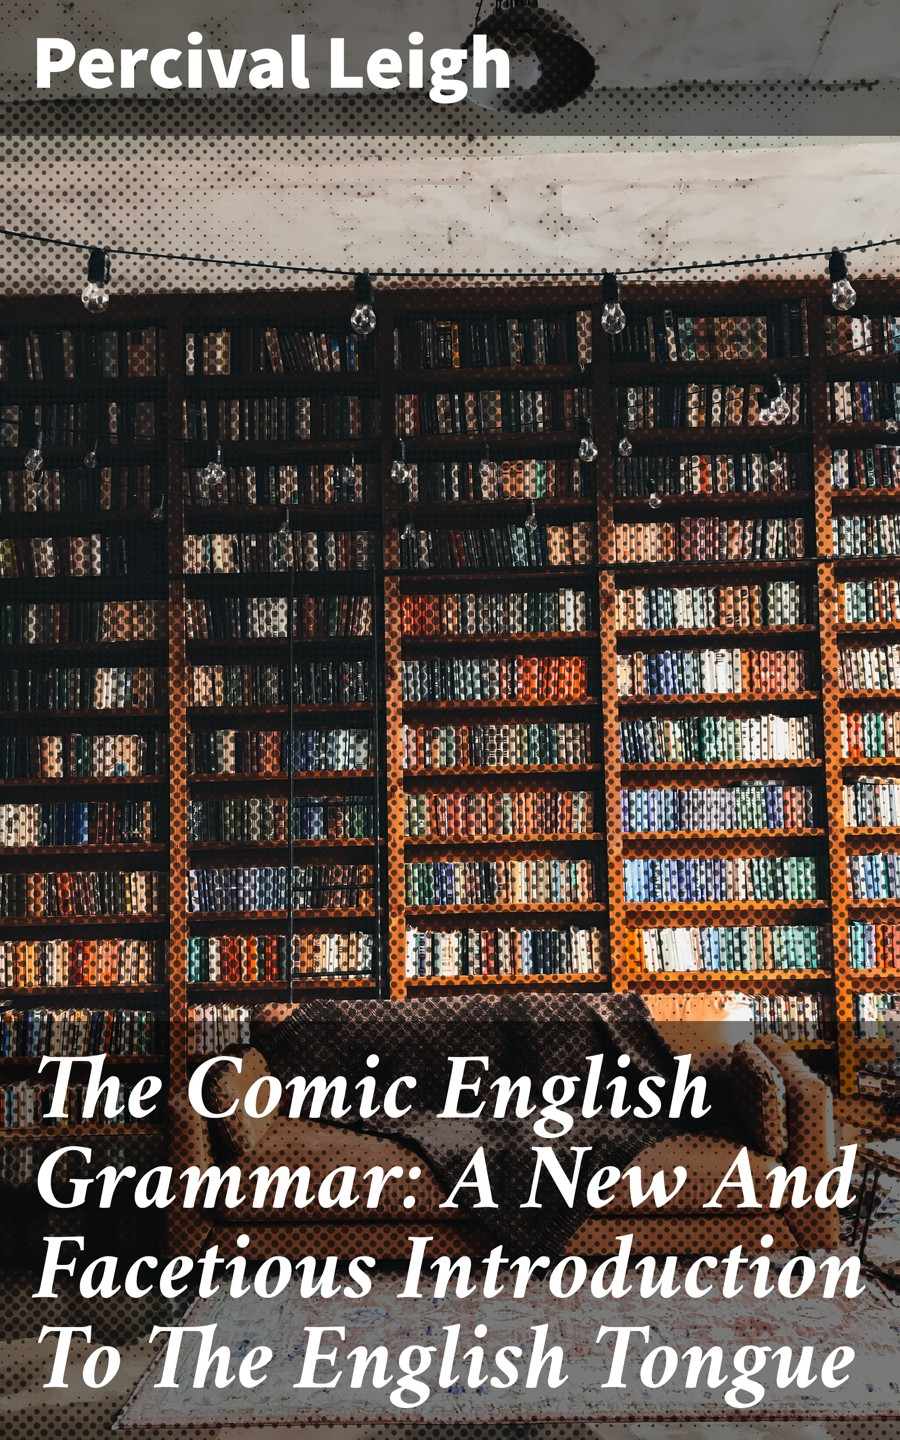 Leigh Percival The Comic English Grammar: A New And Facetious Introduction To The English Tongue introduction to the grammar of english